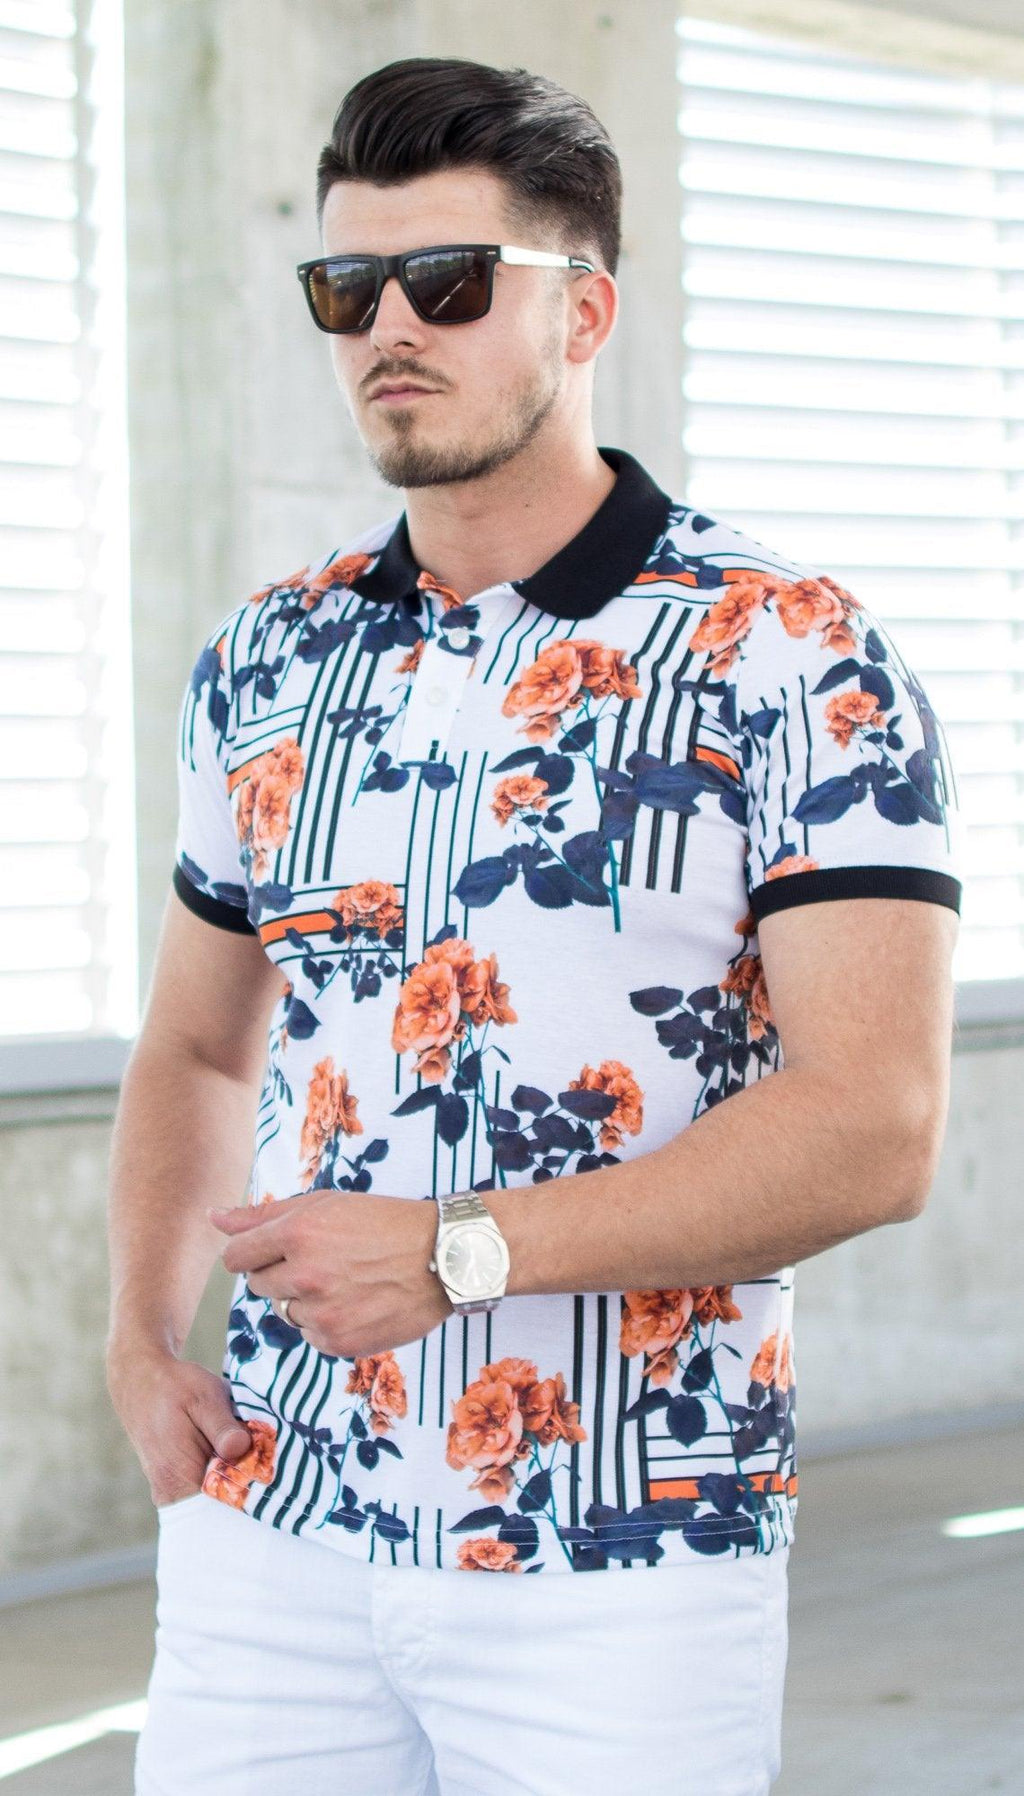 Tricou MFloral Alb/Port - TP03 - street-style-ro